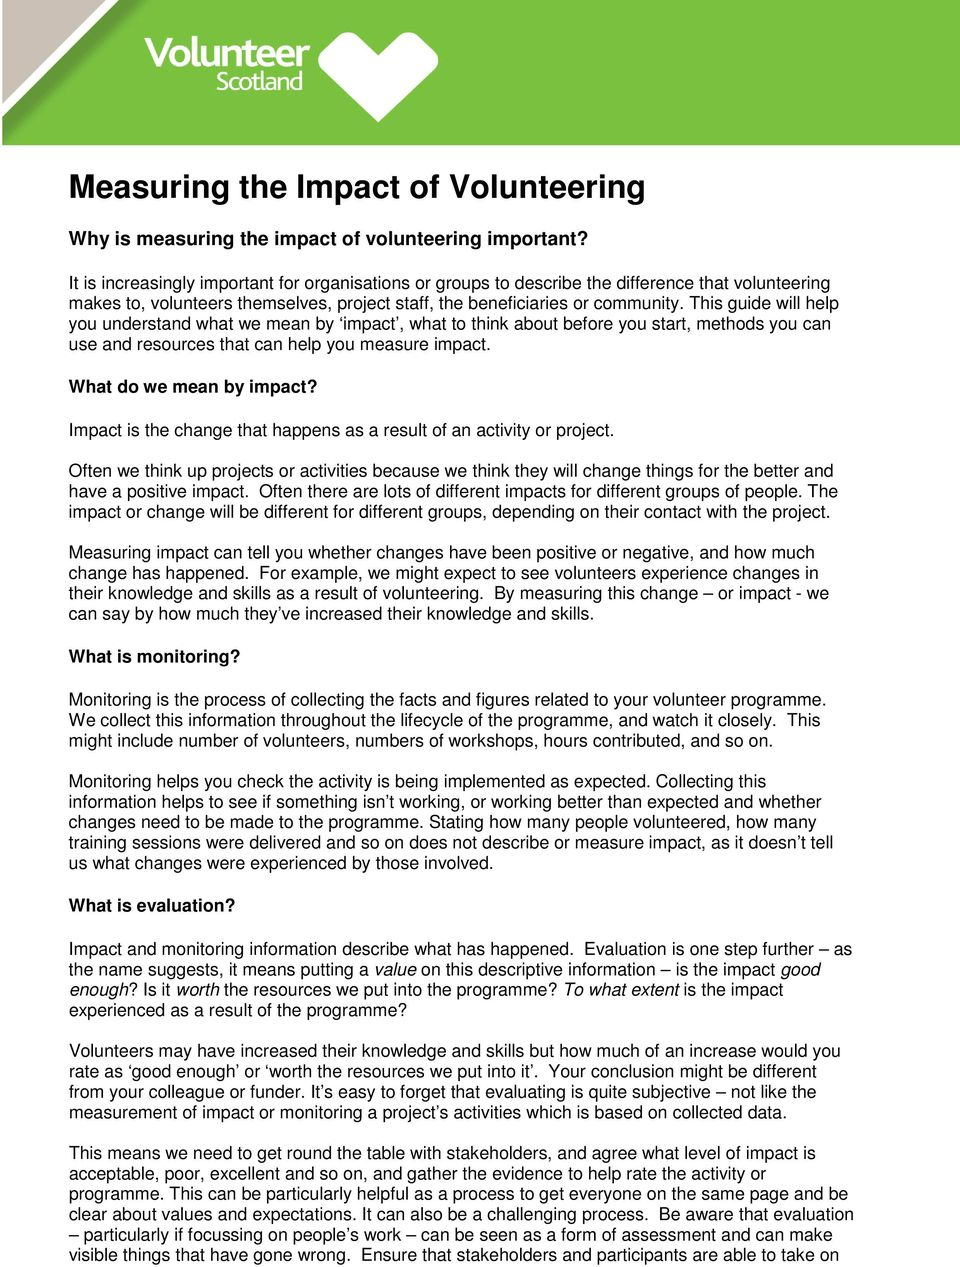 This guide will help you understand what we mean by impact, what to think about before you start, methods you can use and resources that can help you measure impact. What do we mean by impact?